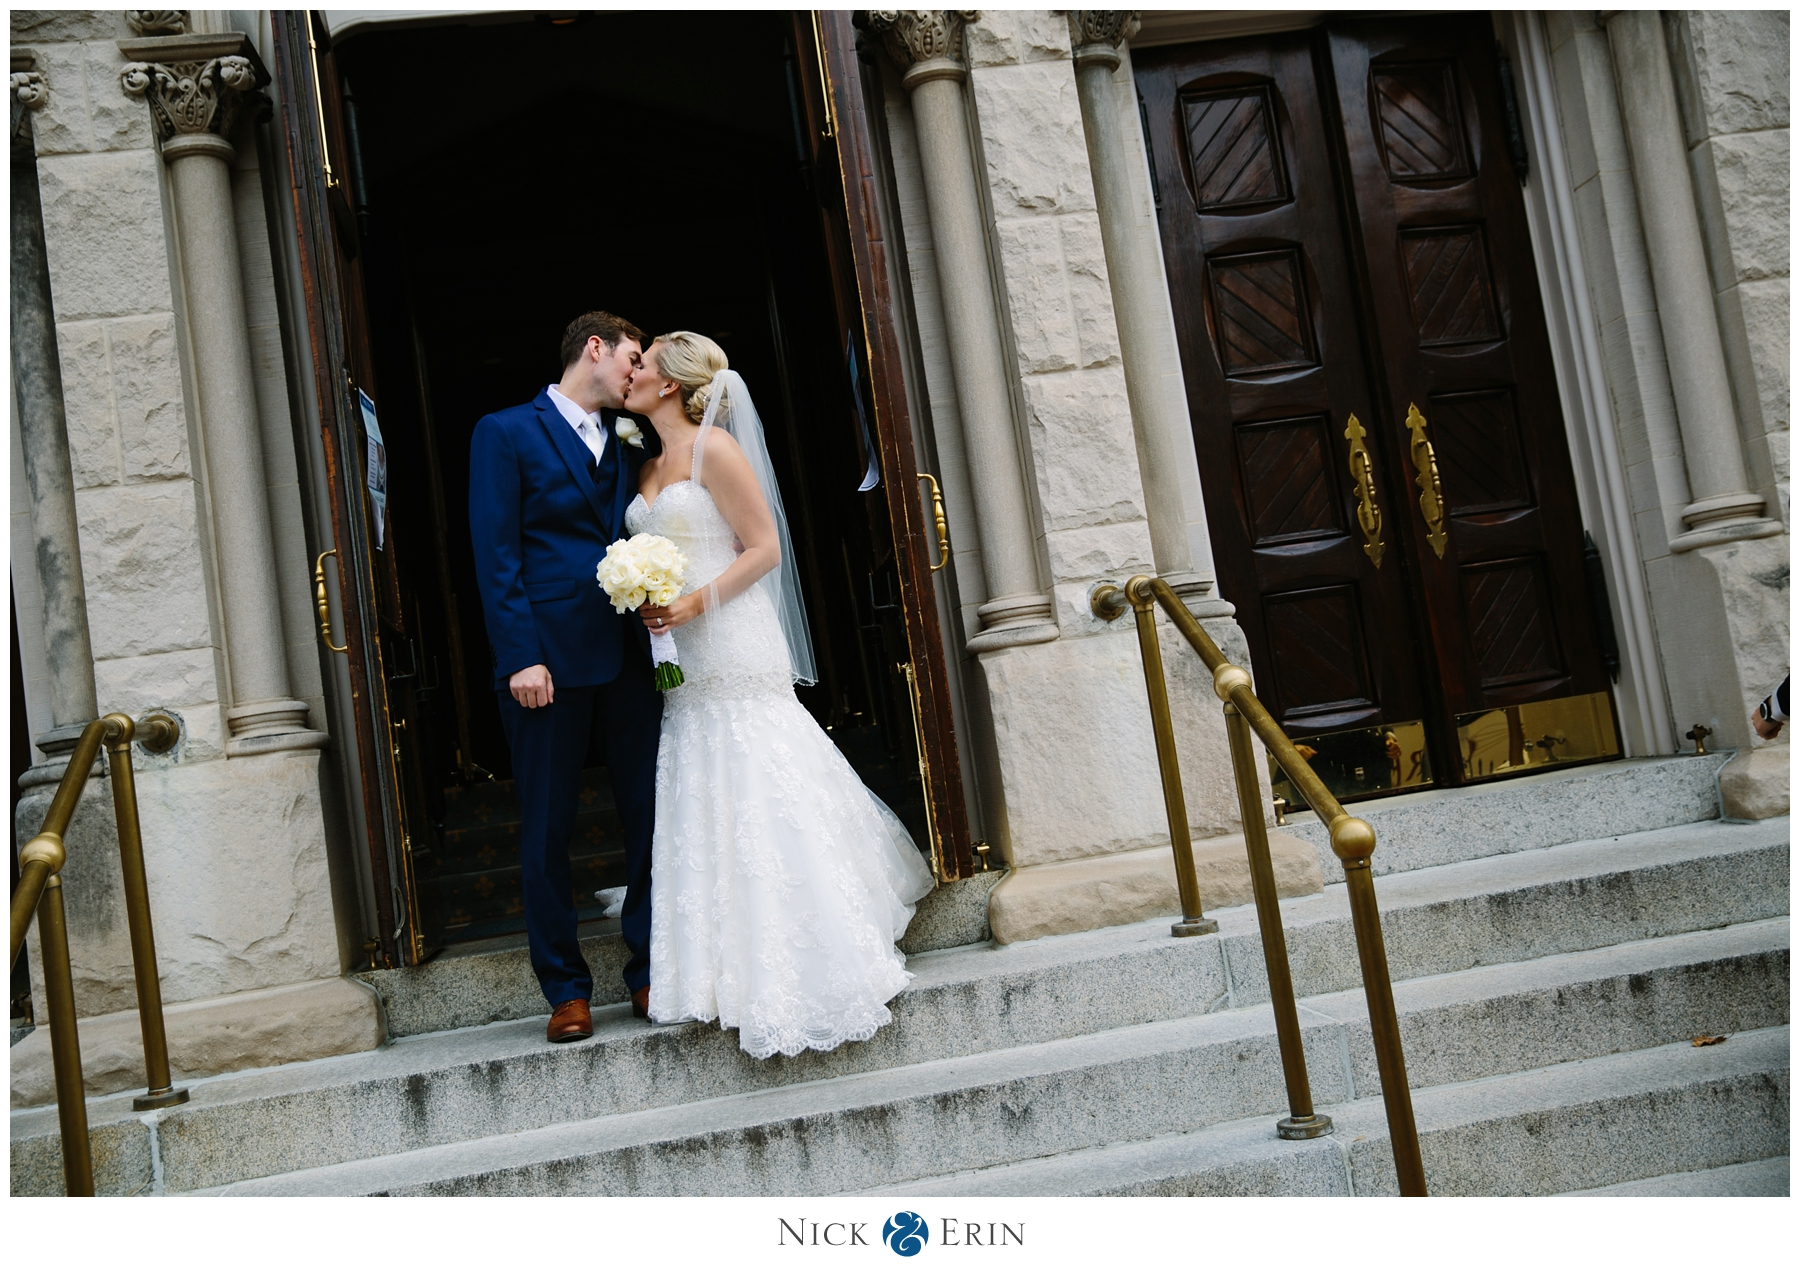 Donner_Photography_Torpedo Factory Wedding_Courtney and Scott_0030